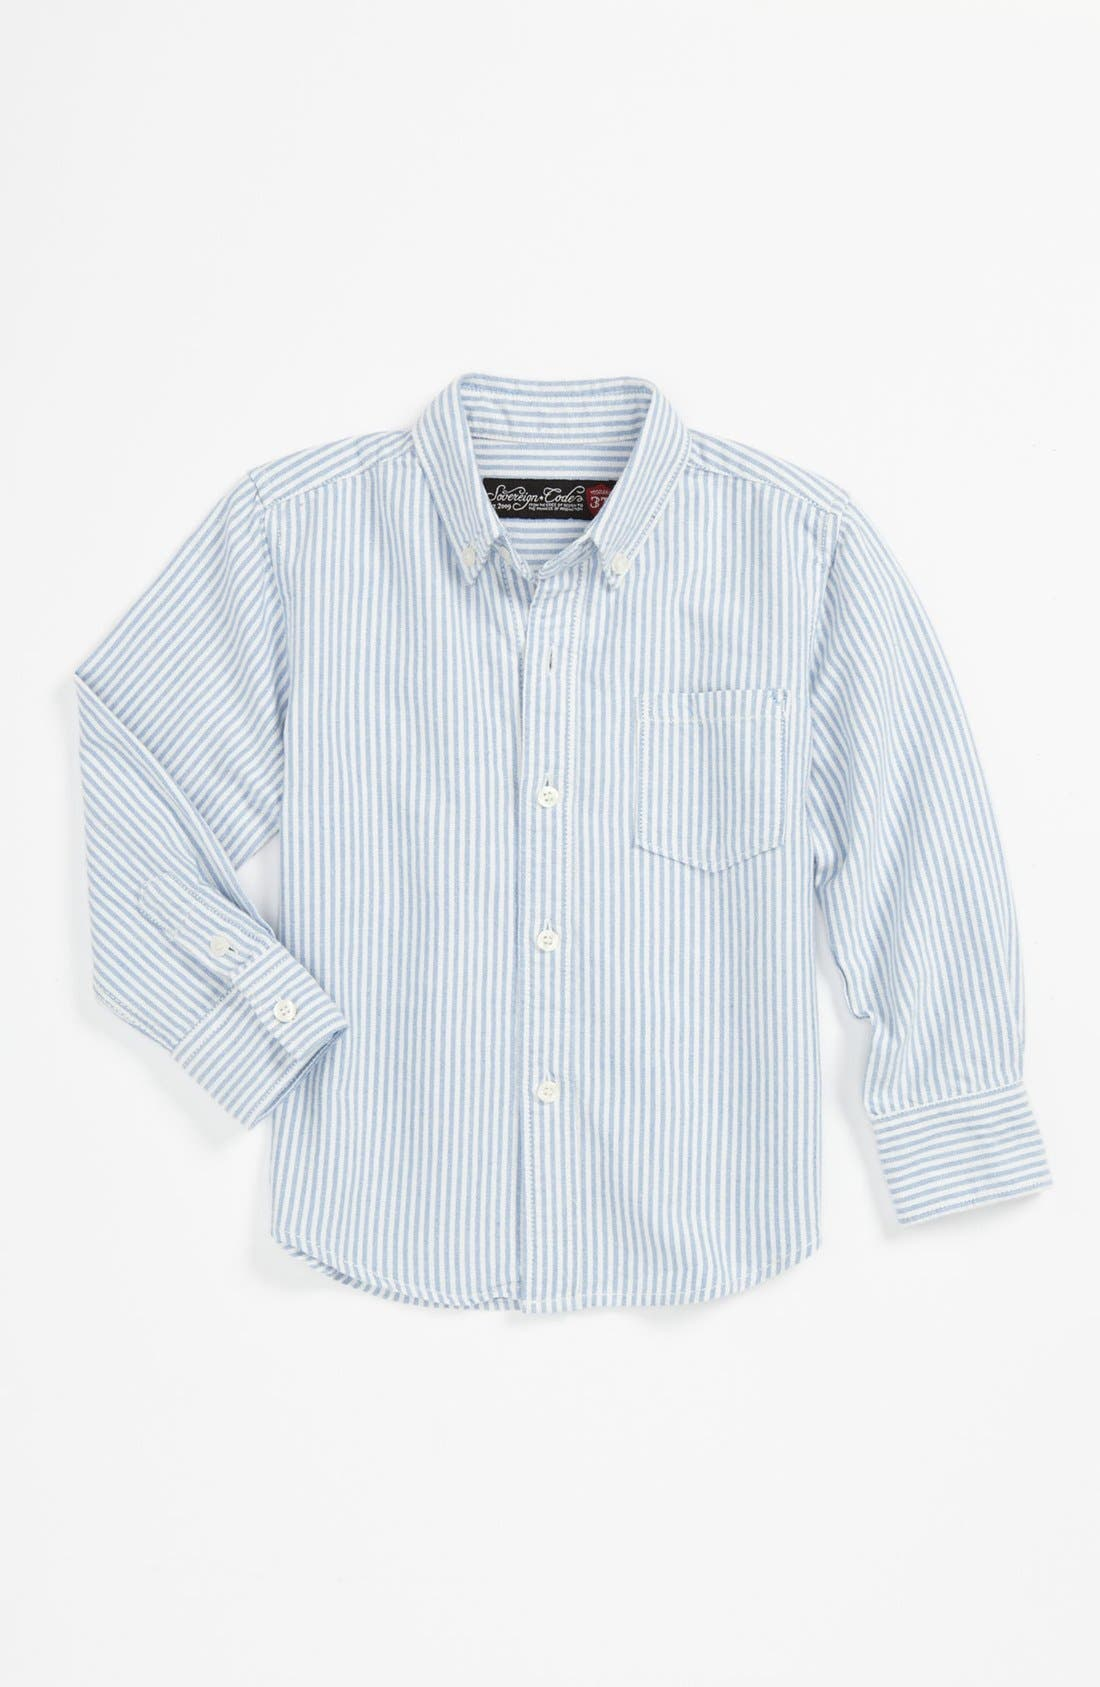 Main Image - Sovereign Code Oxford Cloth Woven Shirt (Toddler)